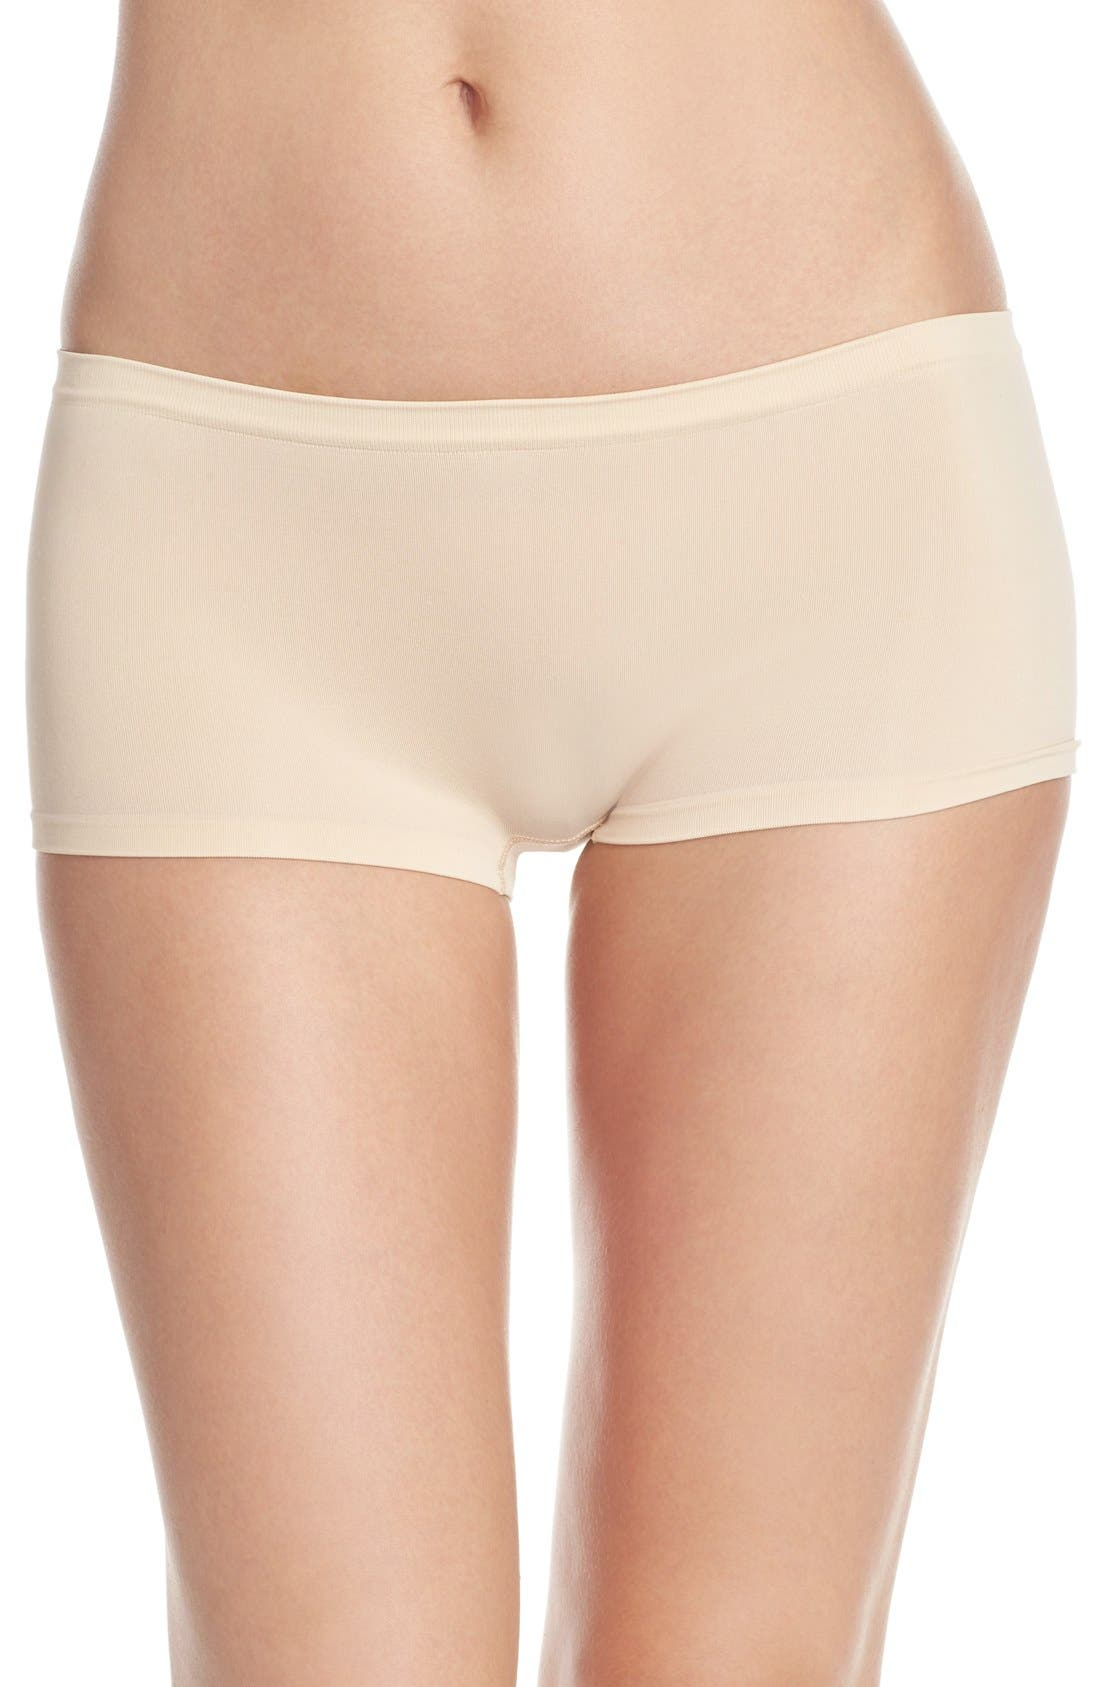 Nordstrom Lingerie Seamless Boyshorts (3 for $33)